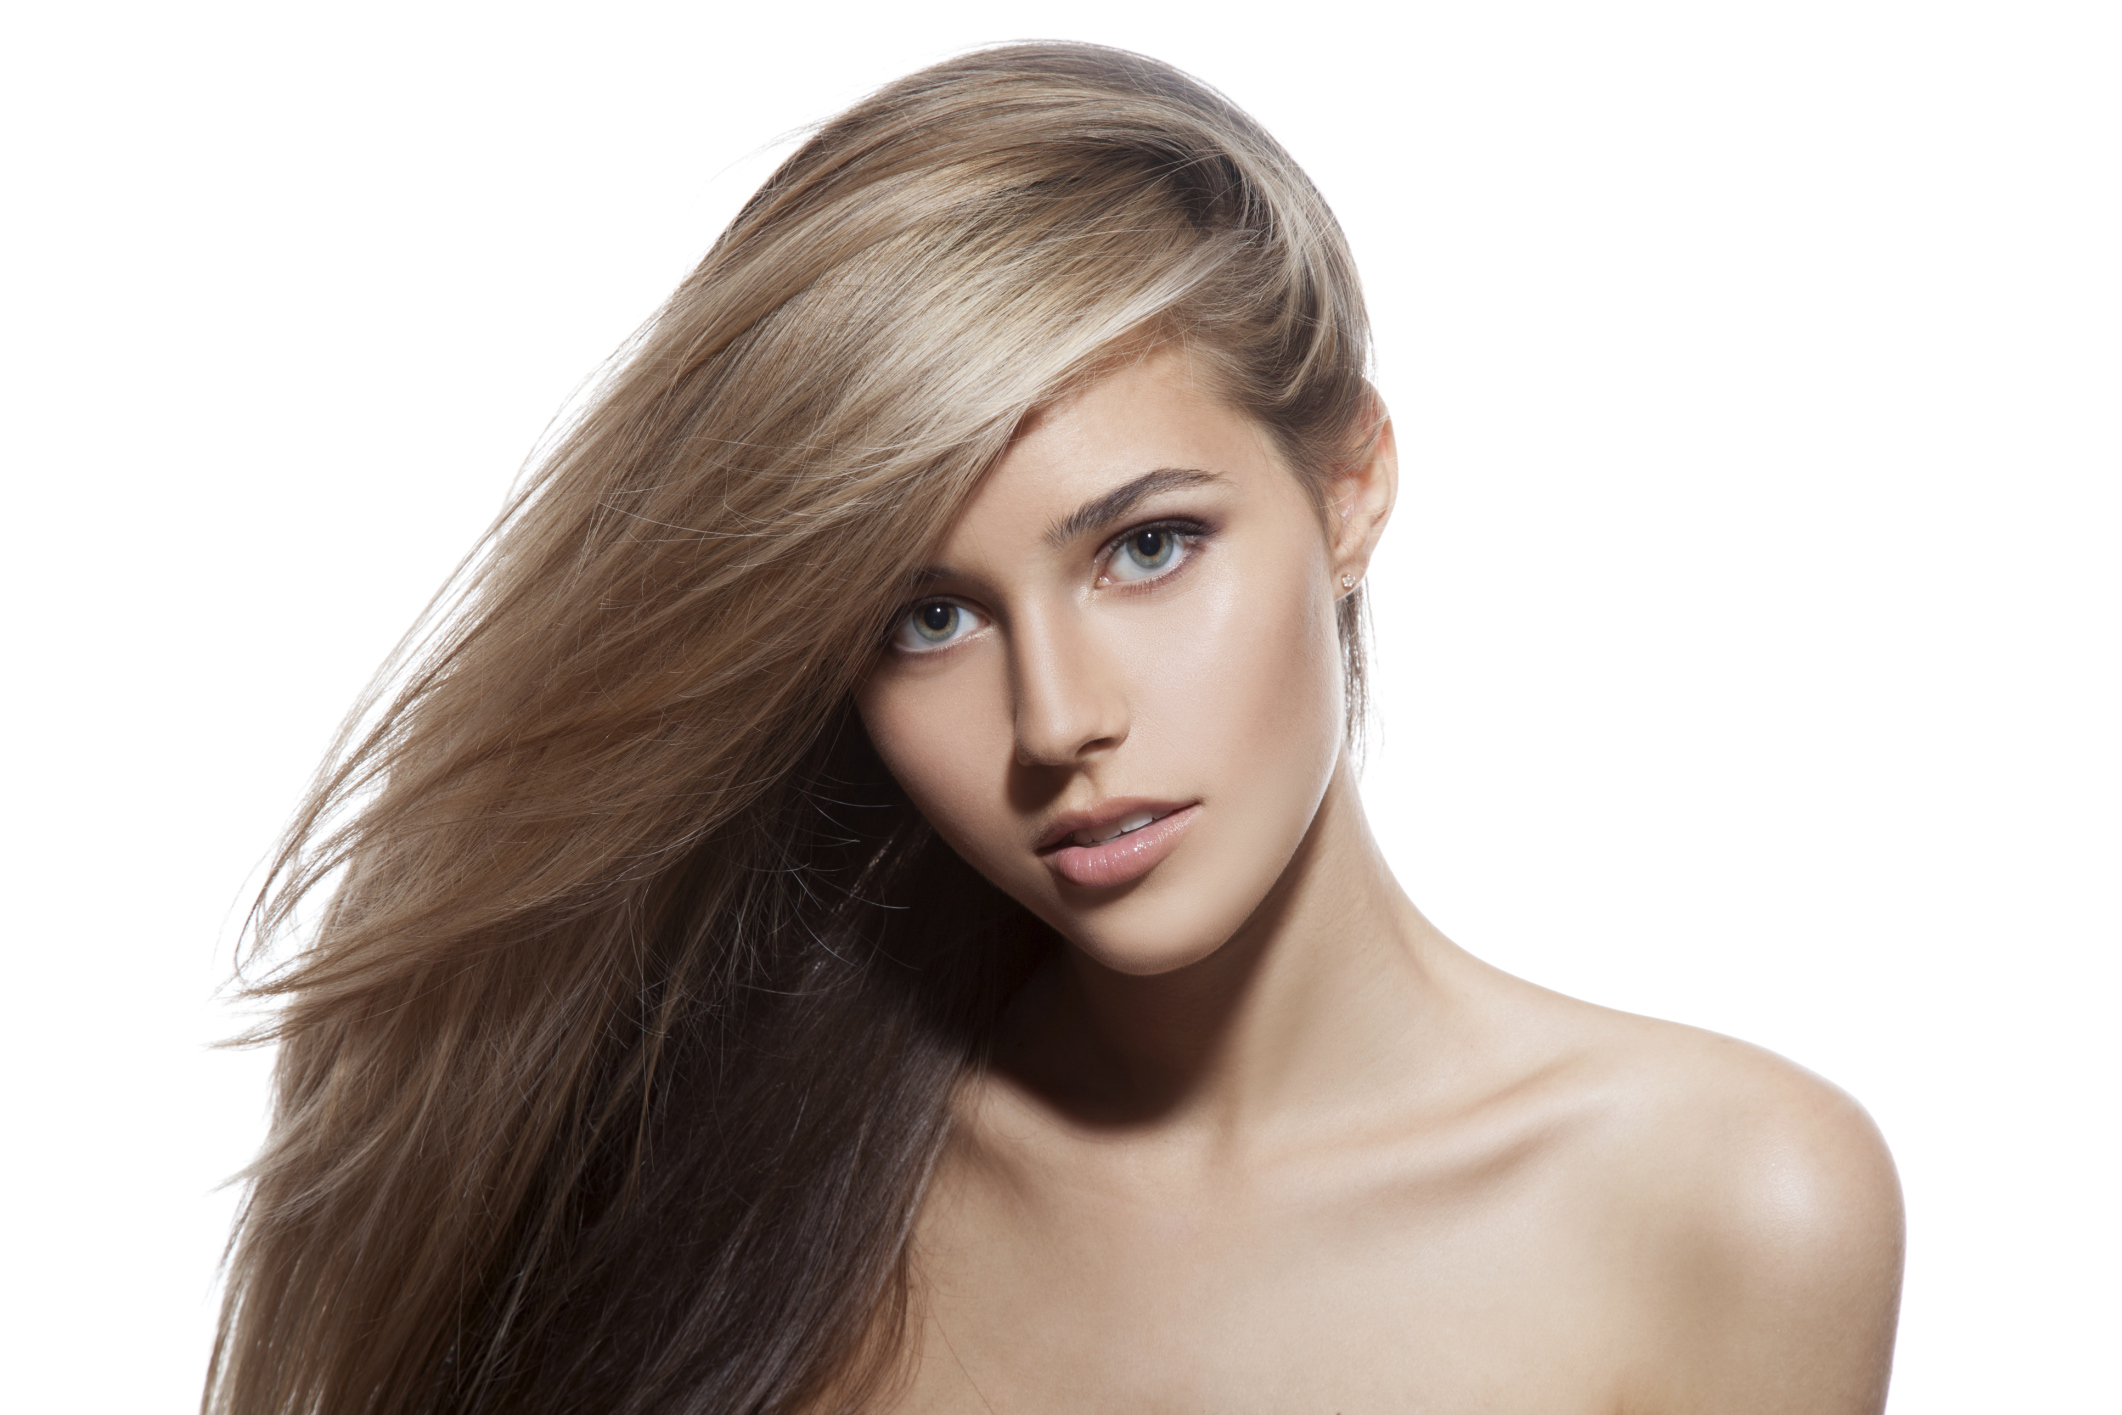 Hair Color Trends for Fall 2015 - The Official Blog of Hair Cuttery